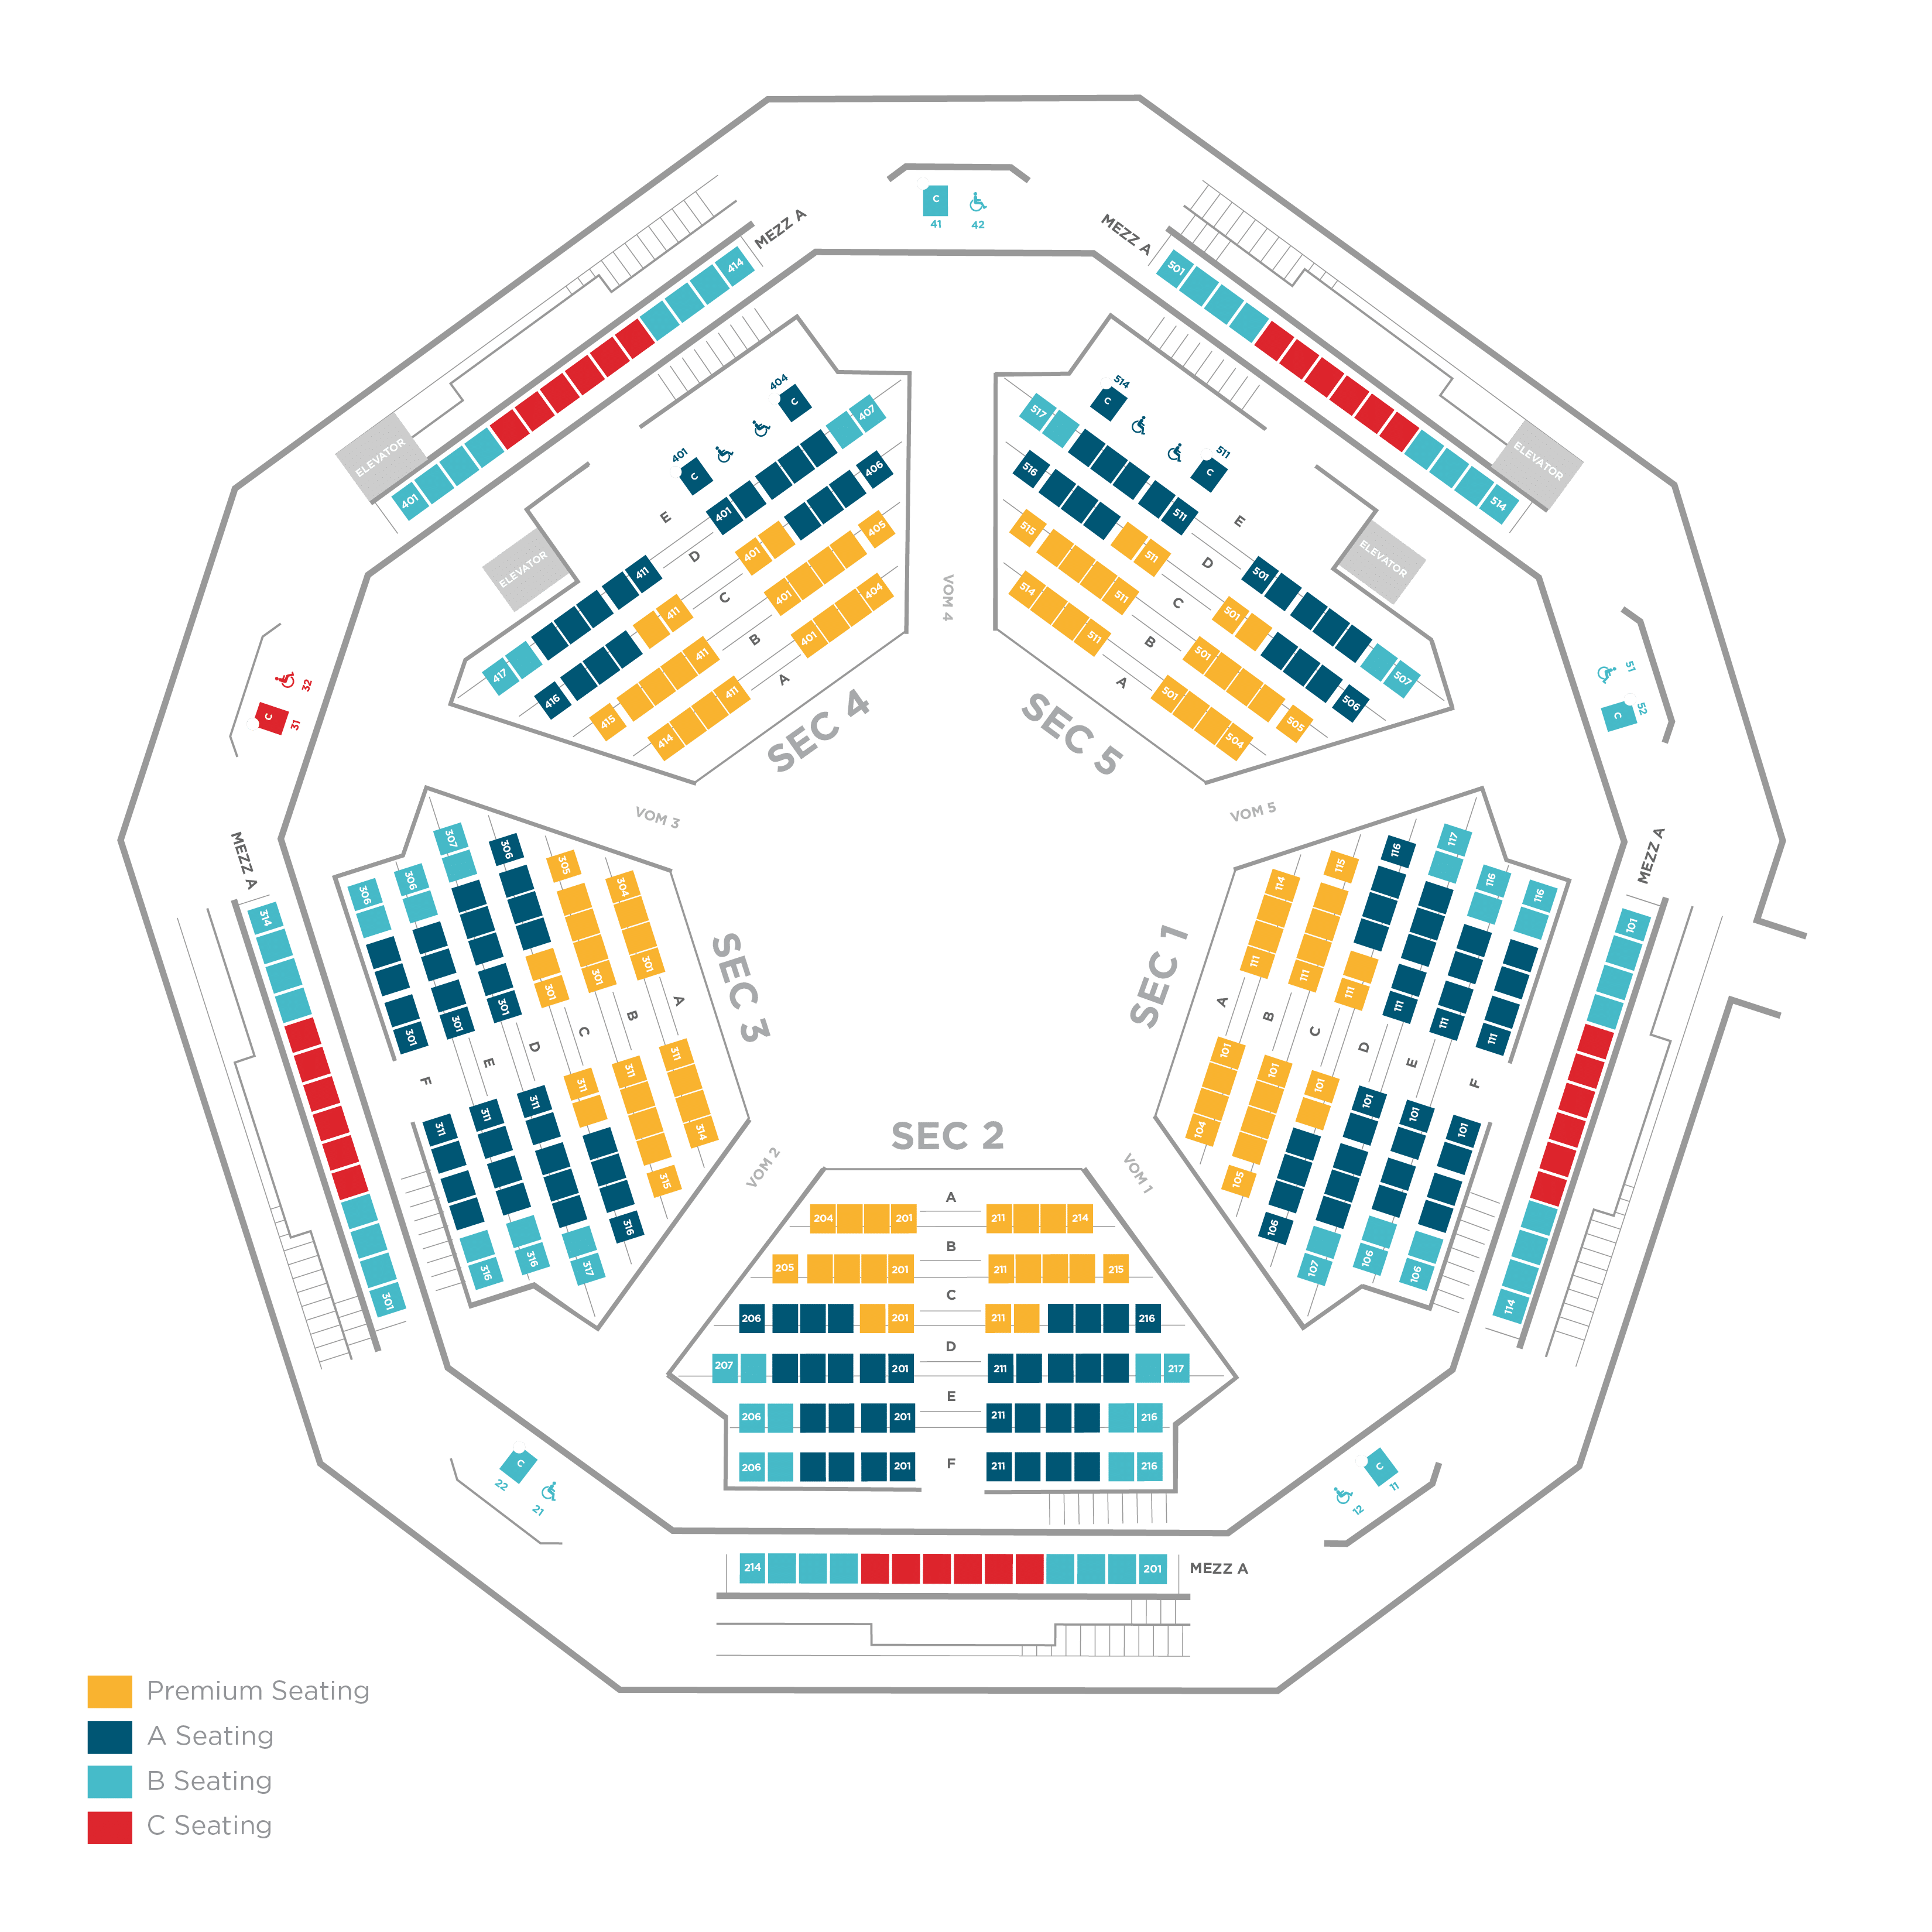 The Space seat map